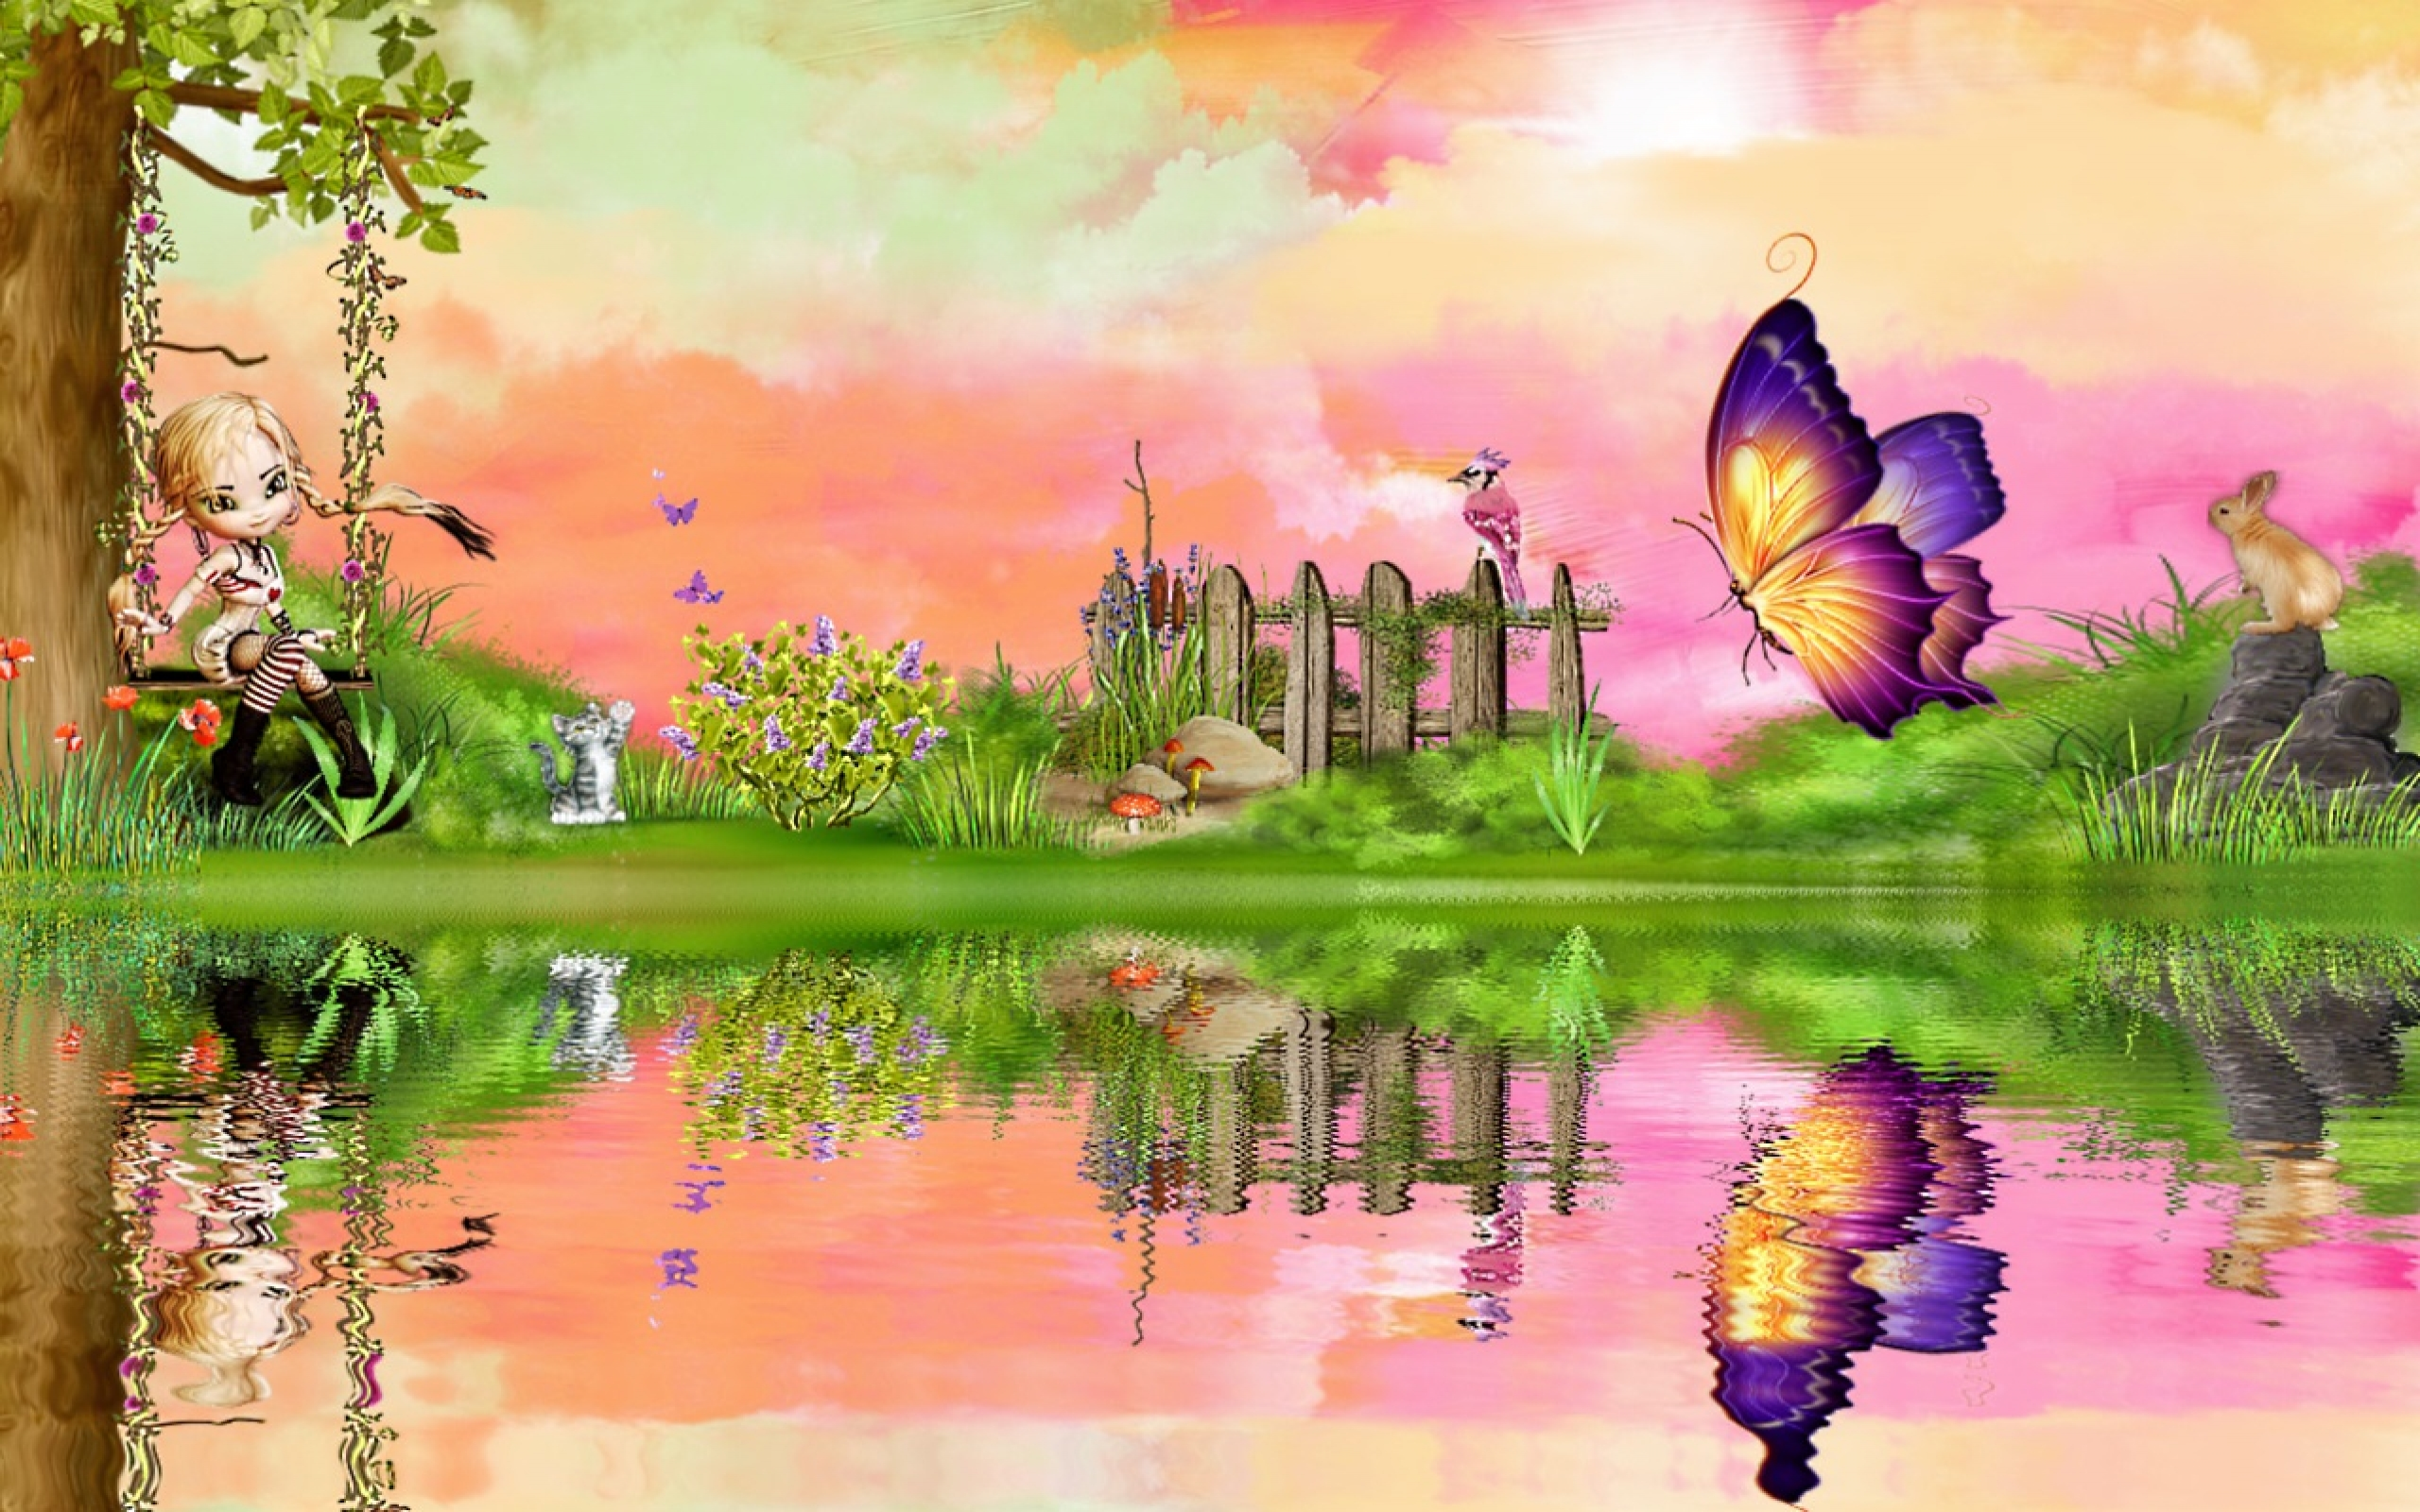 Wallpaper 3d Spring Wallpaper: Wallpapers for Gt Cute Spring Wallpaper Backgrounds Xpx 2560x1600px